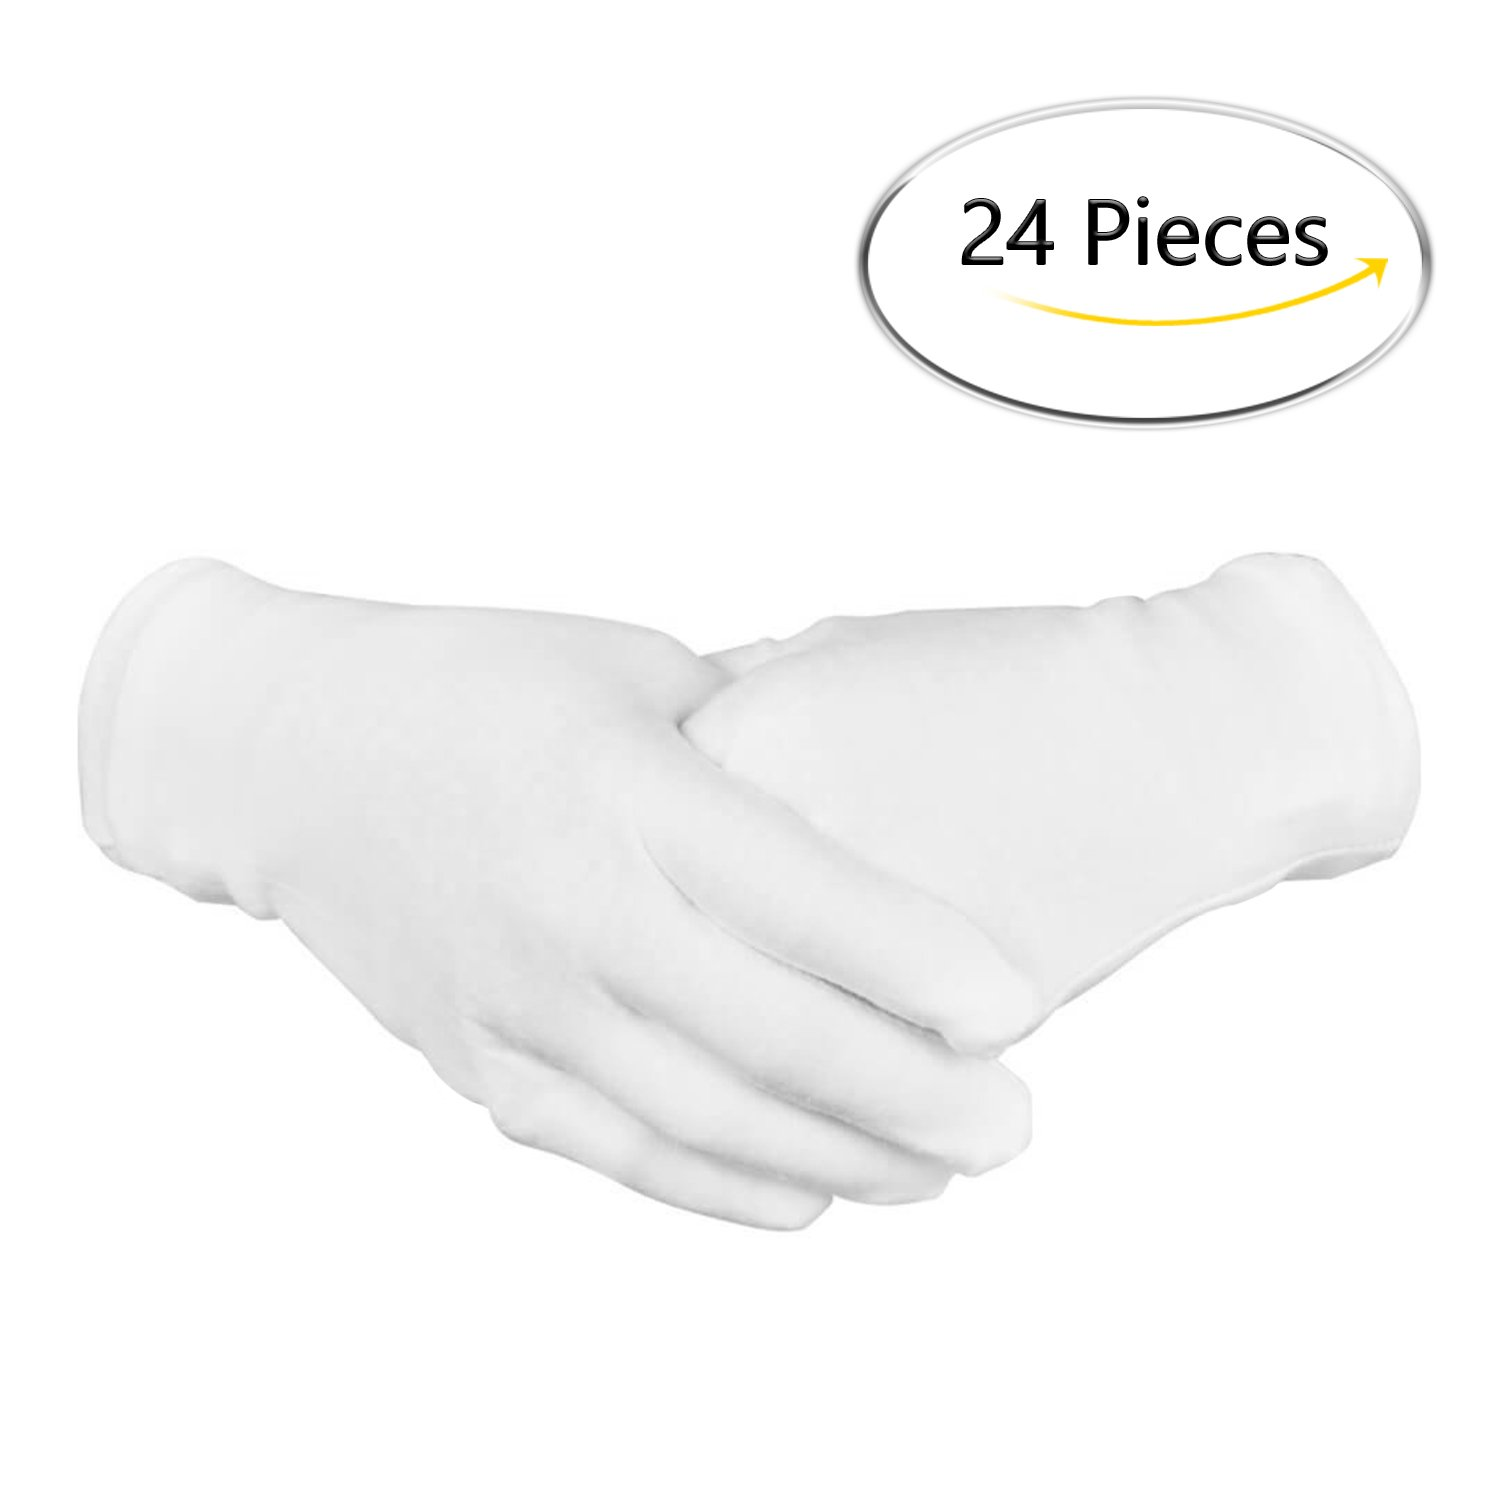 BONTIME 12 Pairs 8.6'' Large White Cotton Safety Work Lining Gloves for Cosmetic Moisturizing Coin Jewelry Silver Inspection Hand Spa Unisex